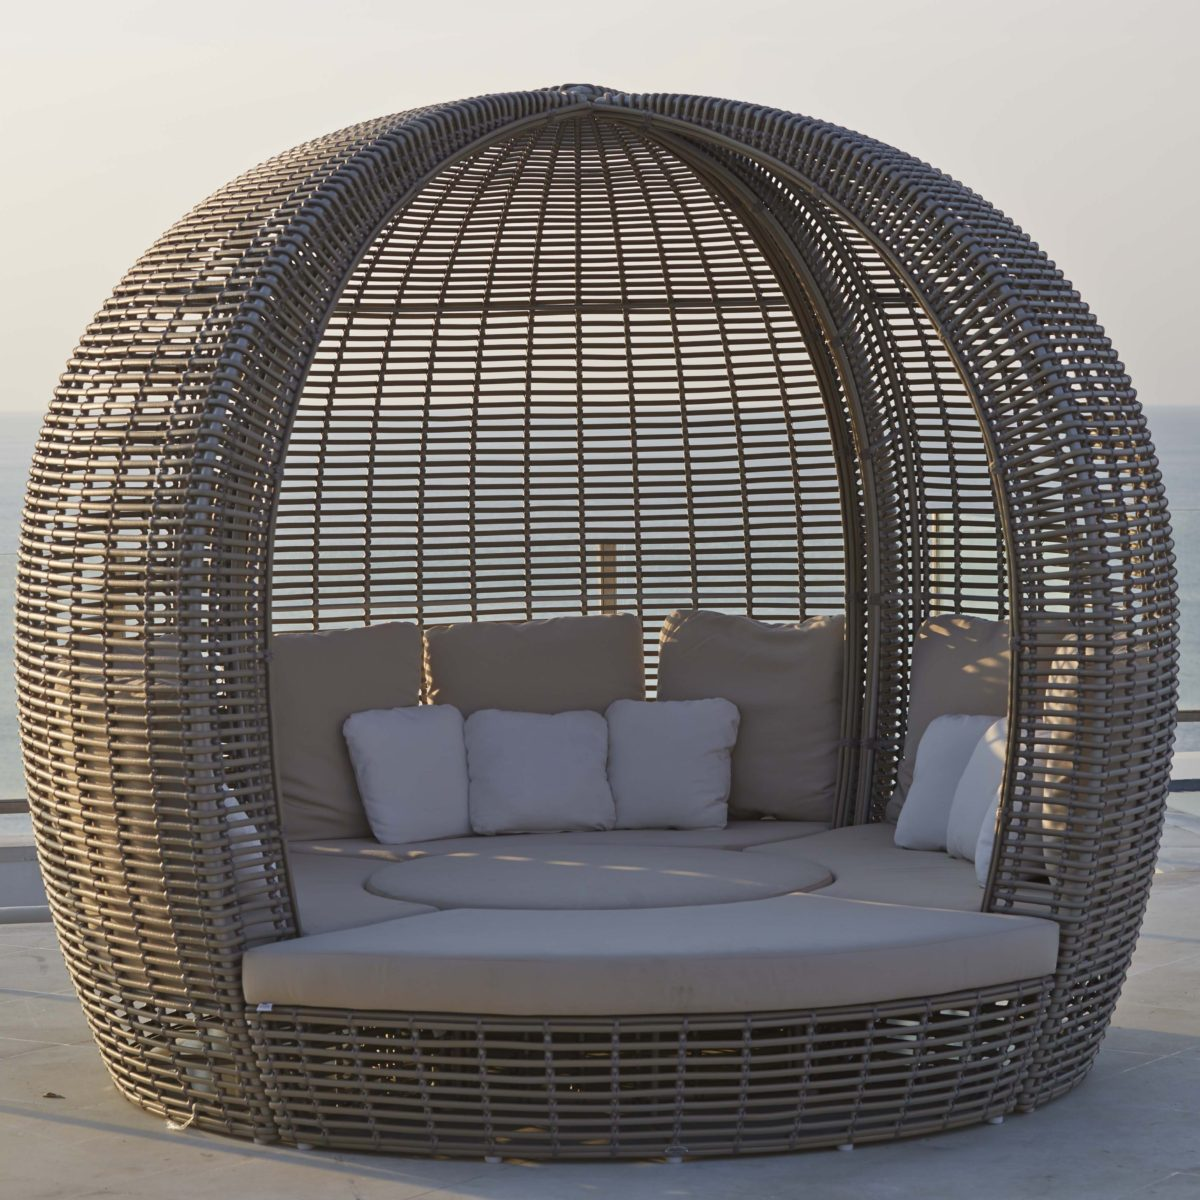 Halo-Daybed-4-KMNP